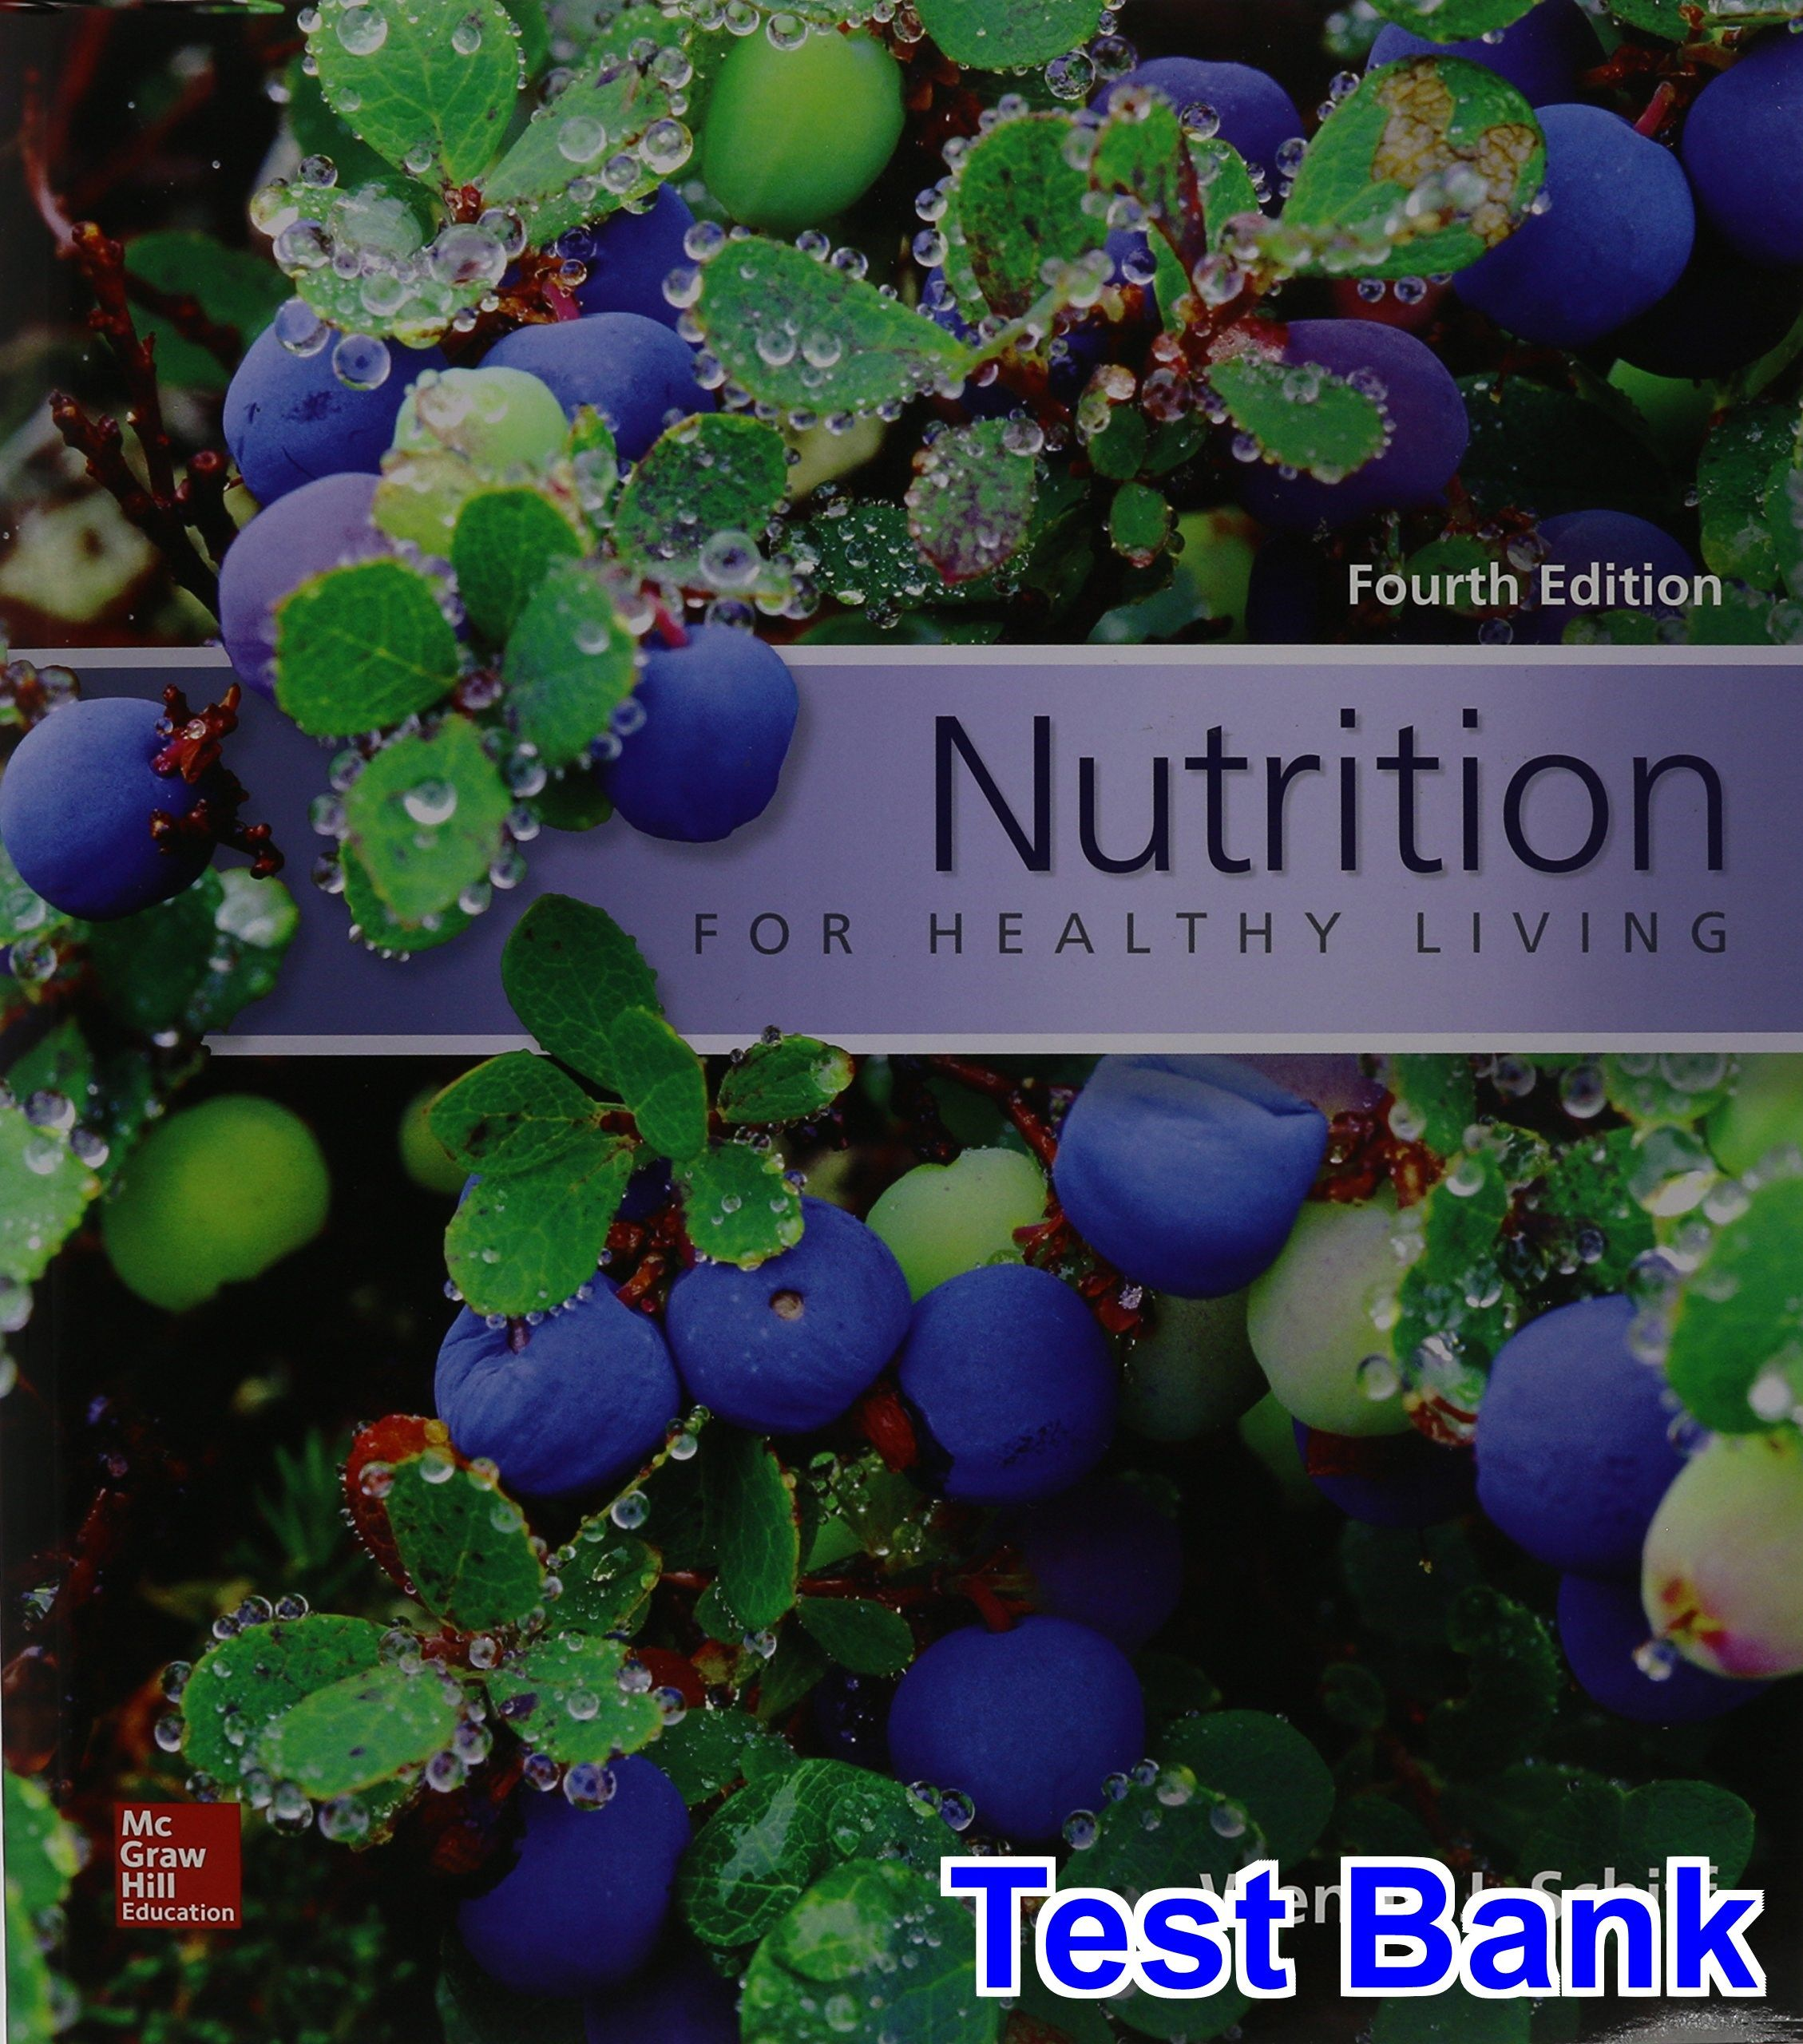 Nutrition for healthy living 4th edition schiff test bank test nutrition for healthy living 4th edition schiff test bank test bank solutions manual exam bank quiz bank answer key for textbook download instantly fandeluxe Gallery